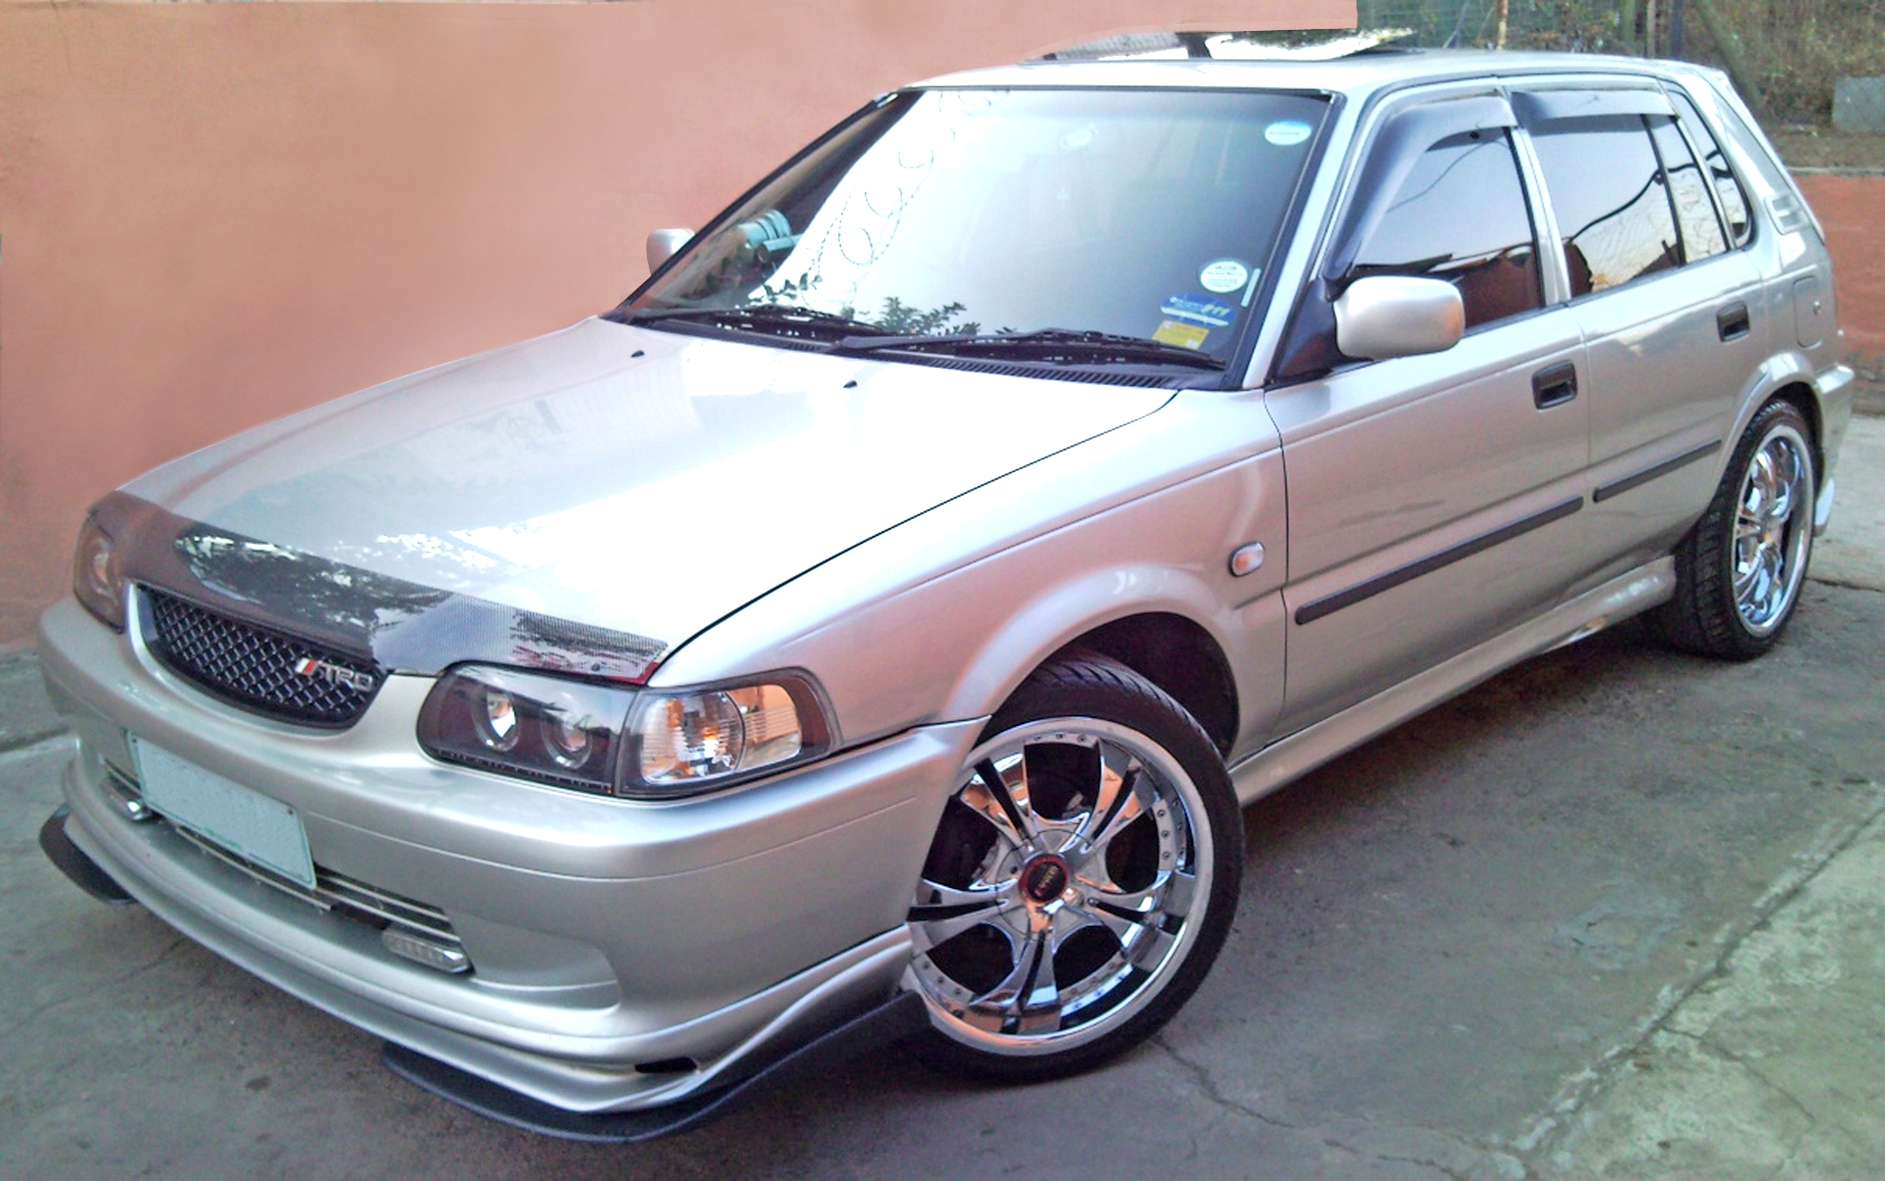 Toyota Conquest was renamed Toyota Tazz in South Africa